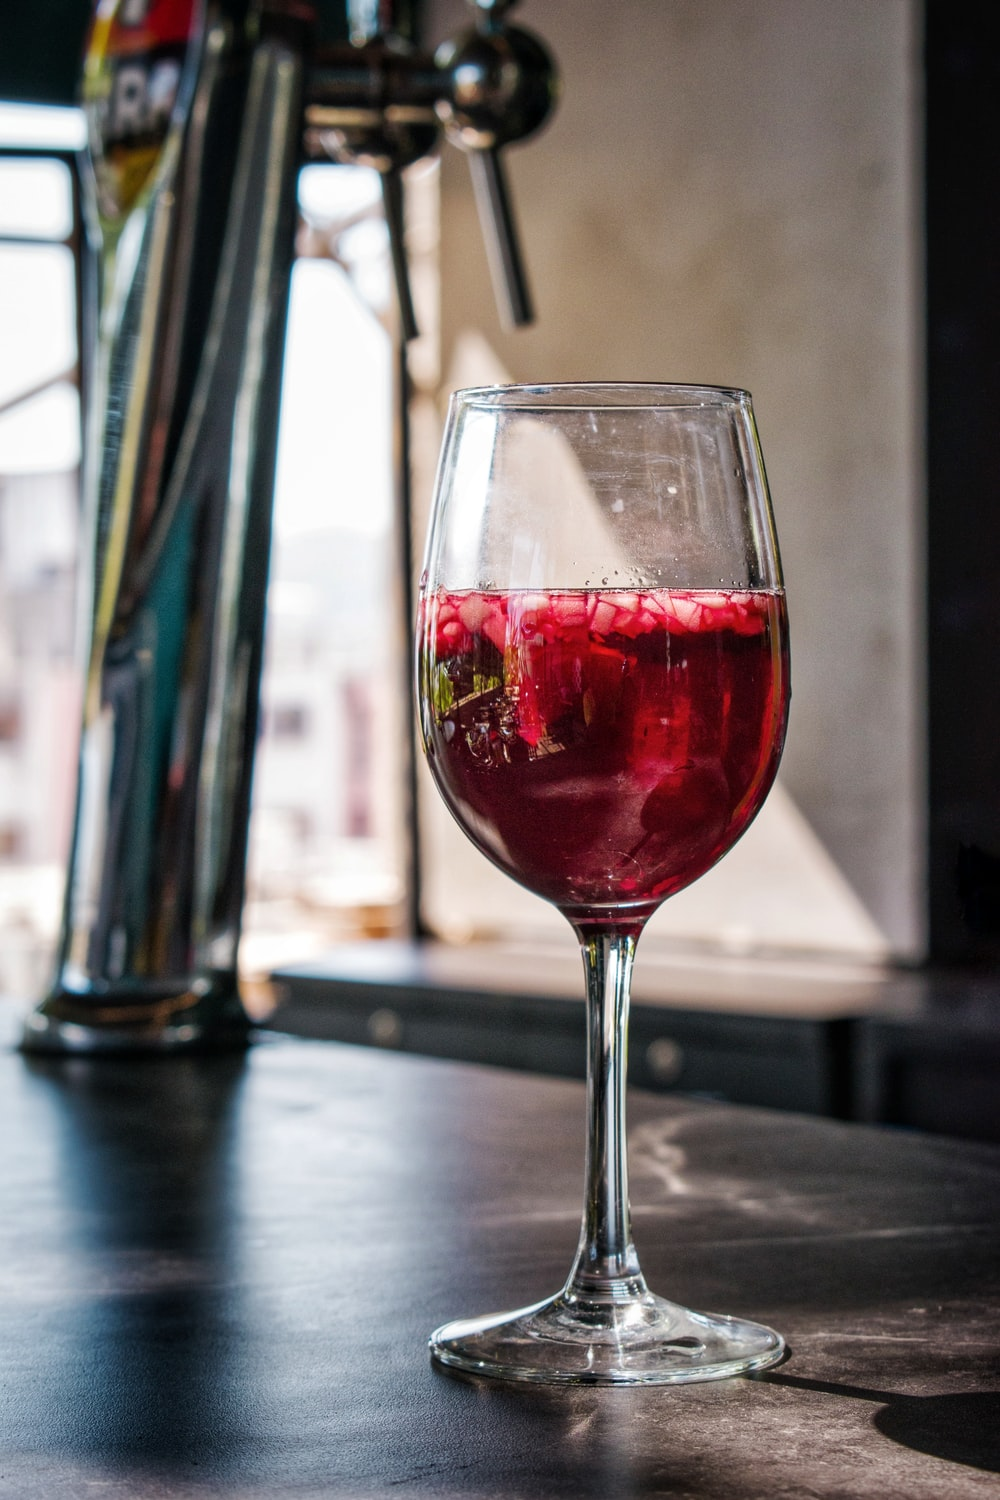 red wine in clear wine glass on table